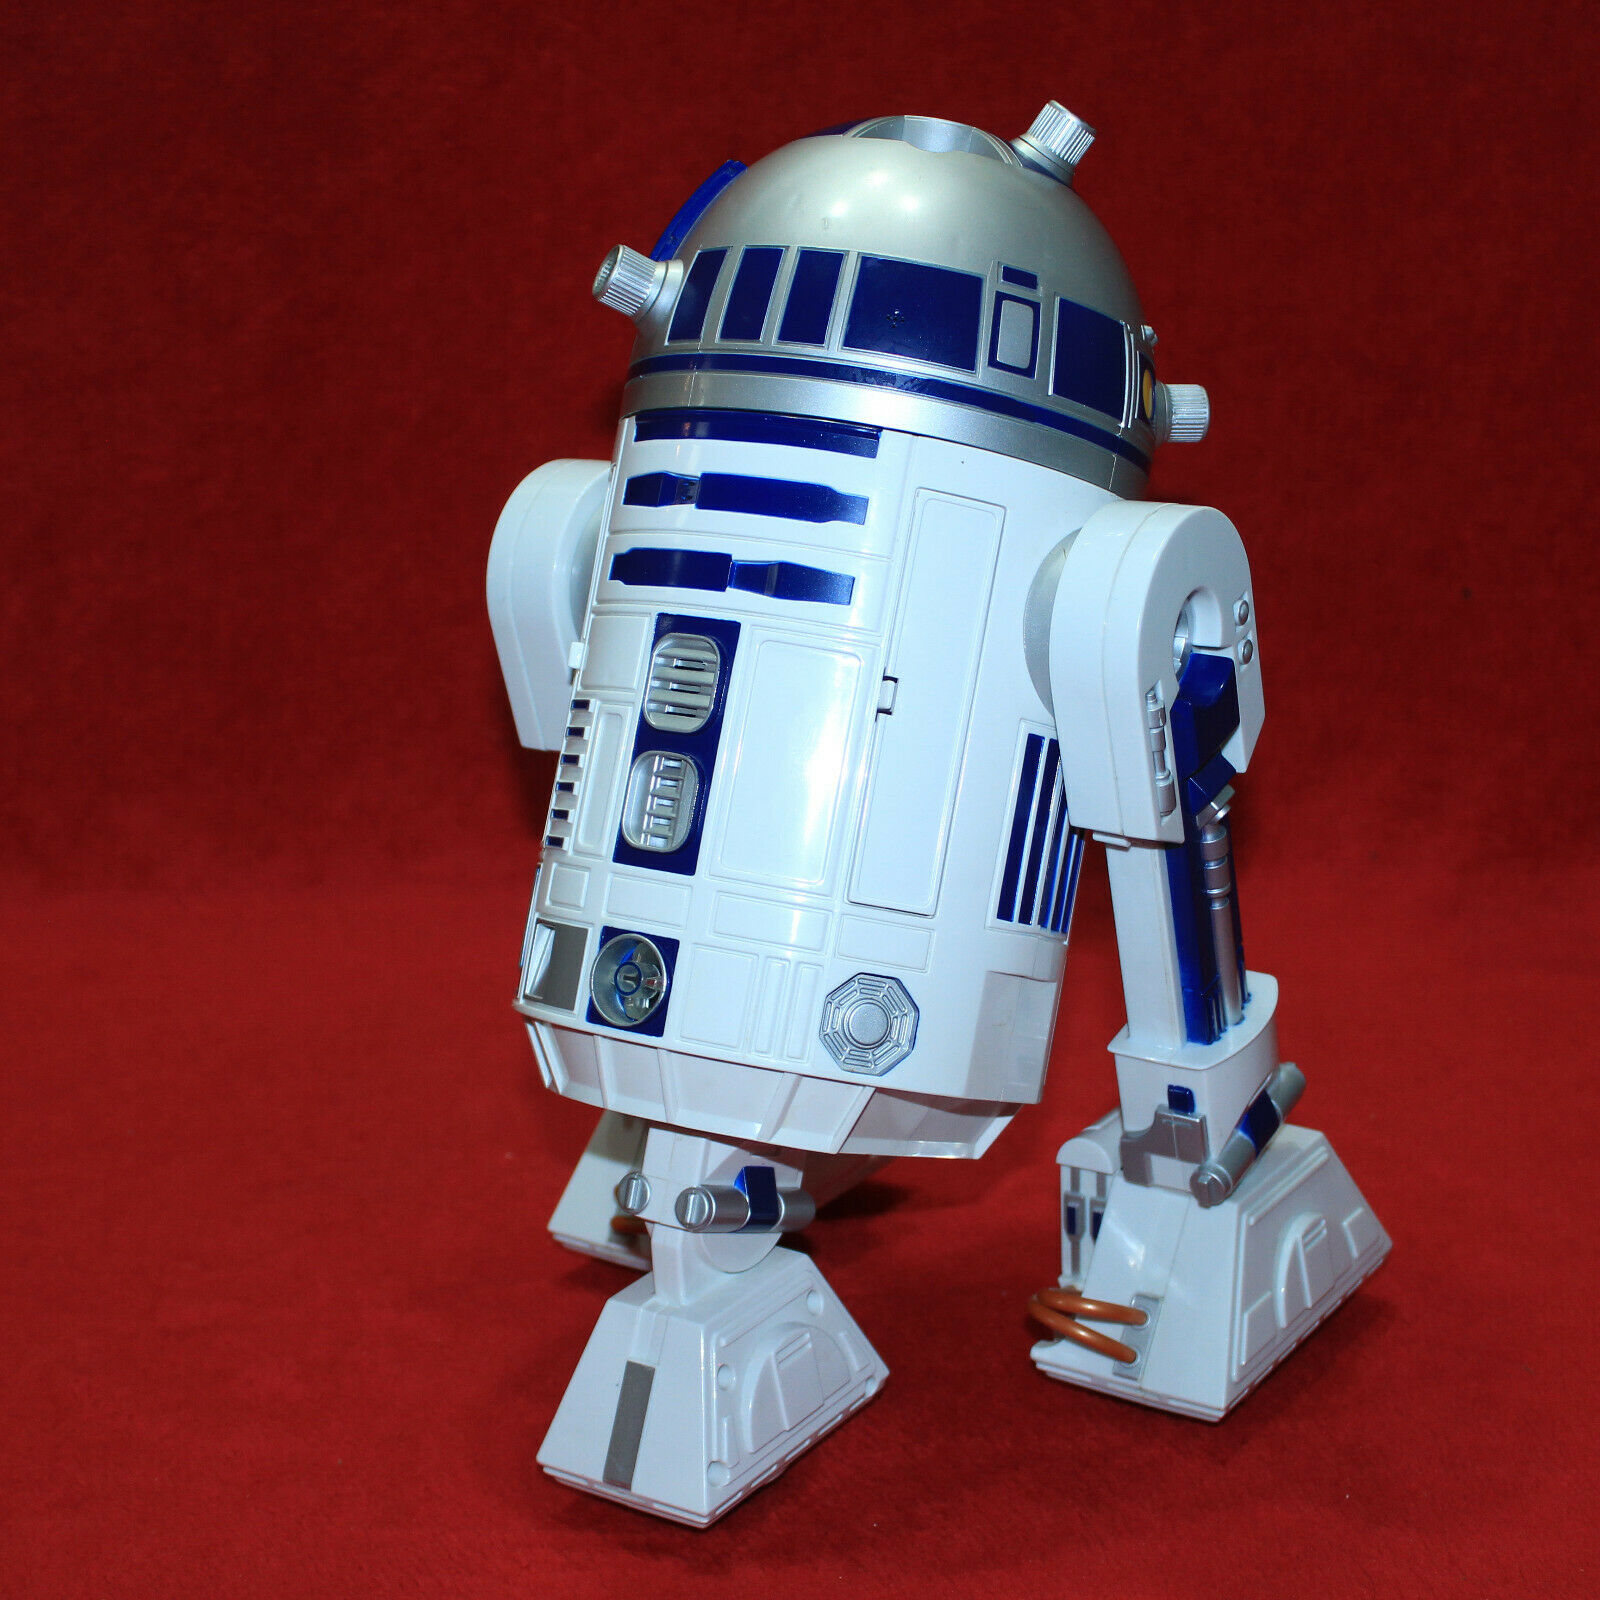 GORGEOUS STAR WARS R2-D2 ASTROMECH DROID Interactive Robot Hasbro WORKS GREAT